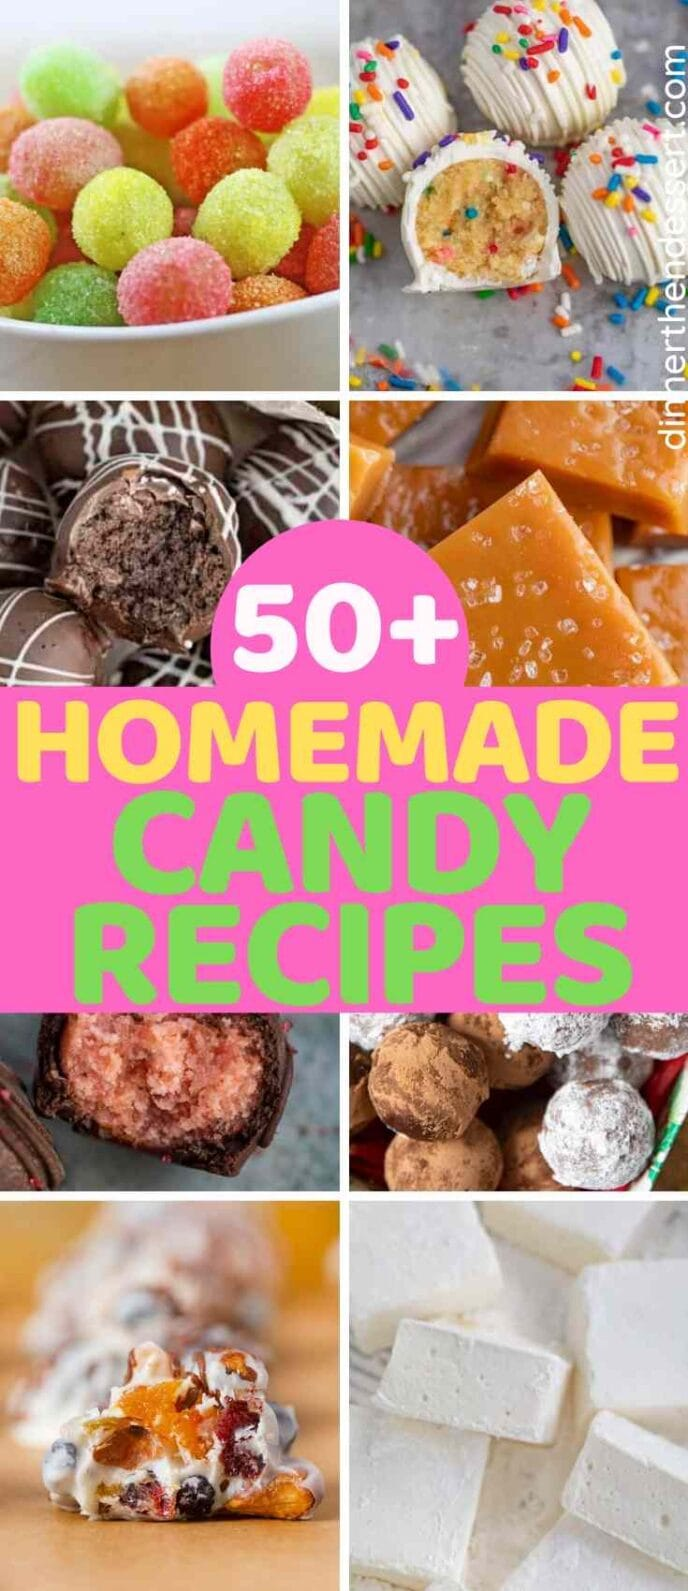 Collage of Candy Recipe Photos including truffles, marshmallow and candy